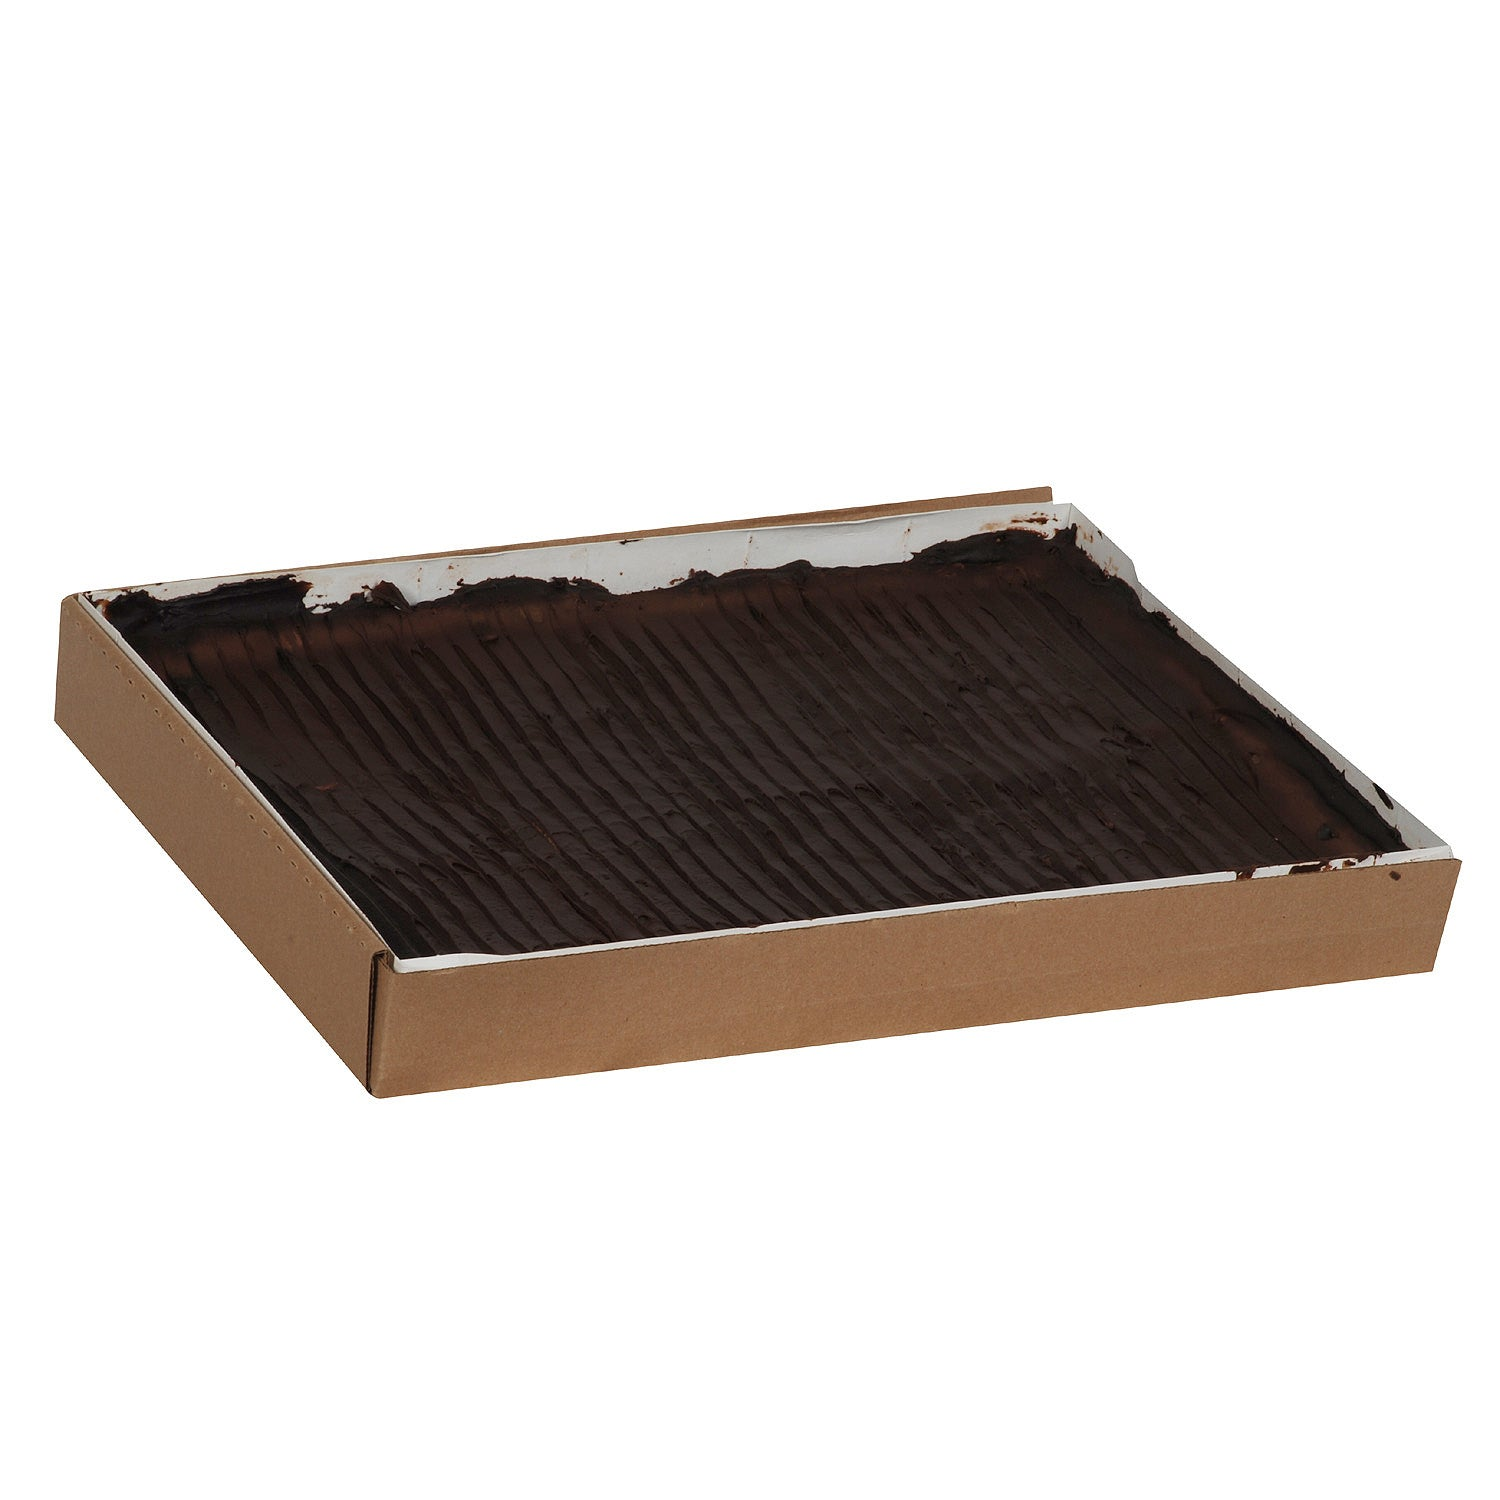 "Sysco Classic Frozen Double Fudge Brownie Sheetcake 12""x16"" - 2 Pack [$28.07/each]"